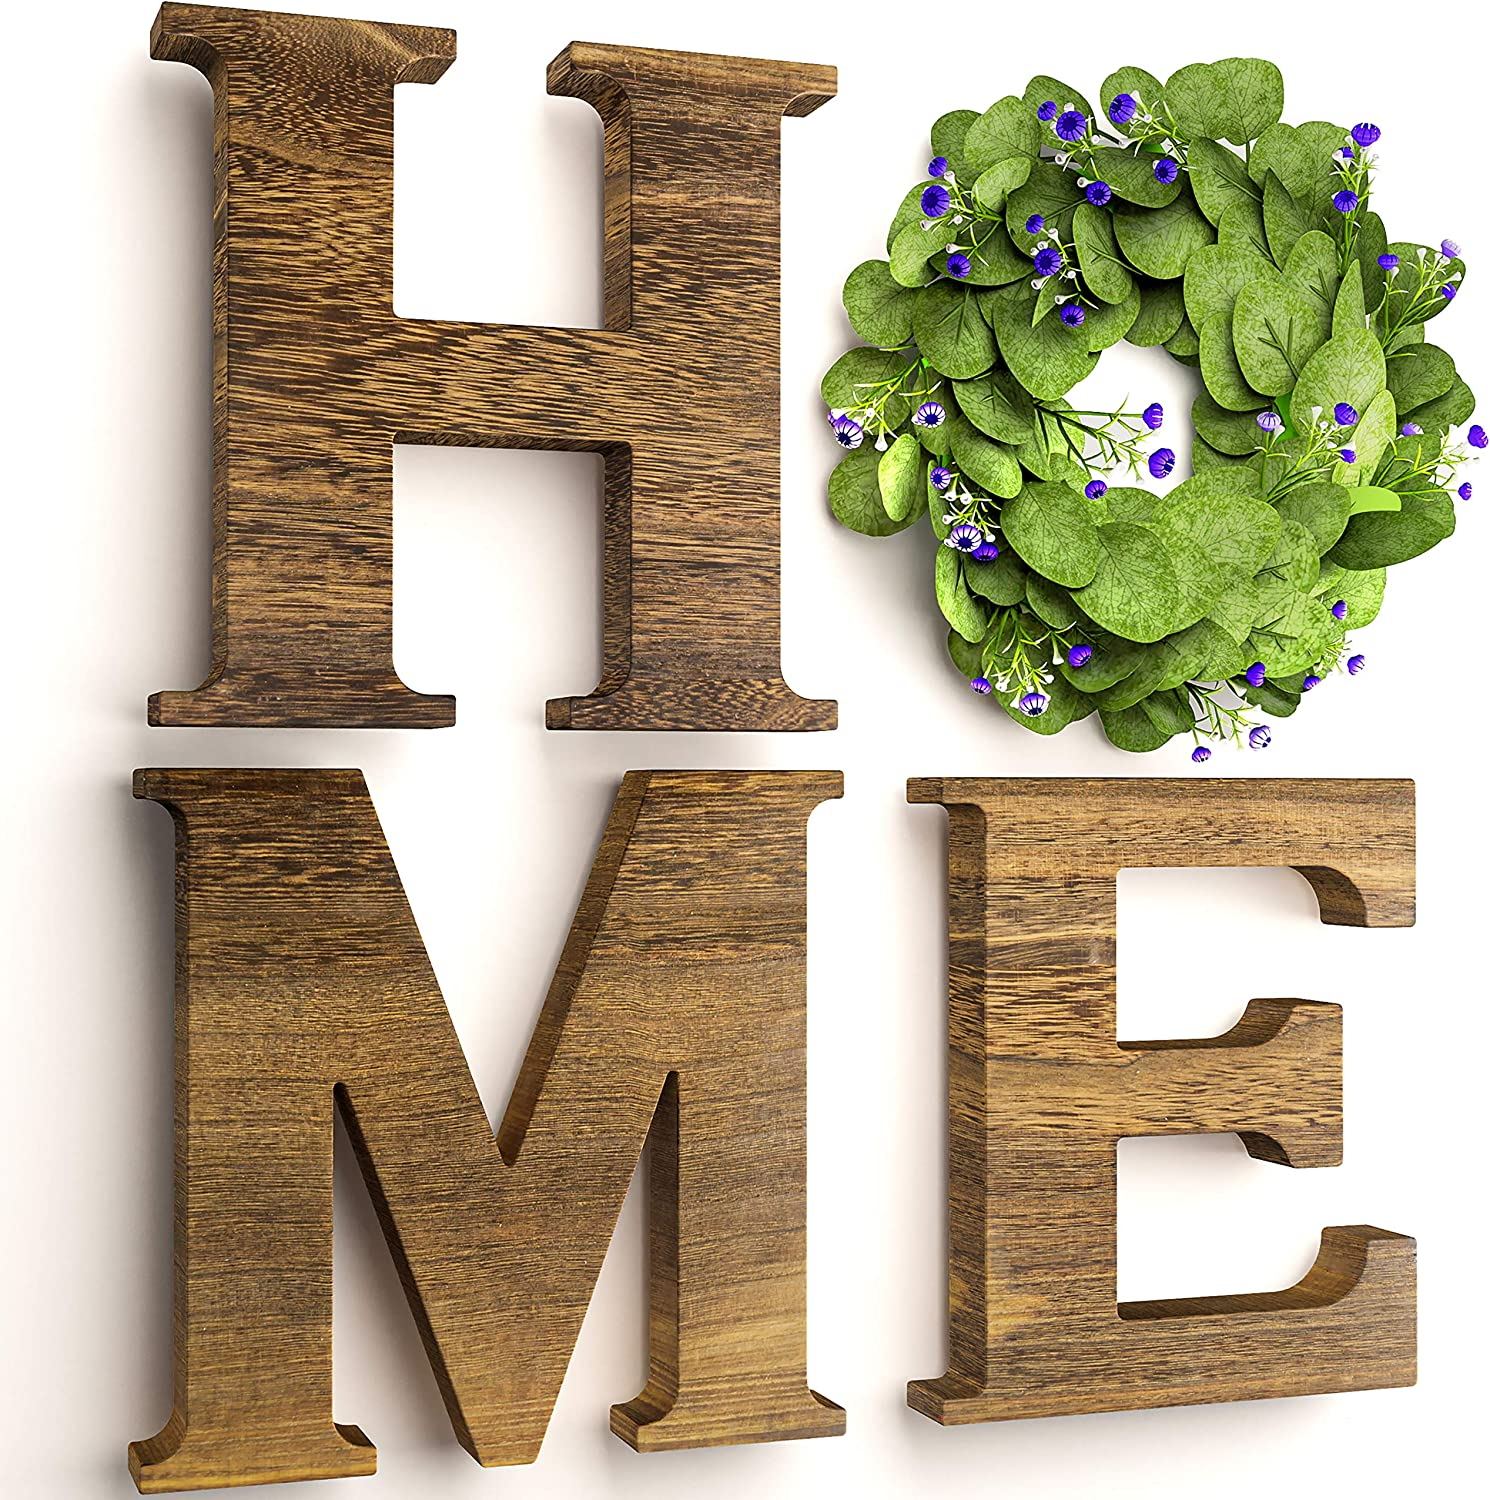 DOONLIFE Home Letters for Wall with Wreath - Easy to Hang Wooden Signs for Home Decor Wall with Artificial Eucalyptus Wreath (Brown)